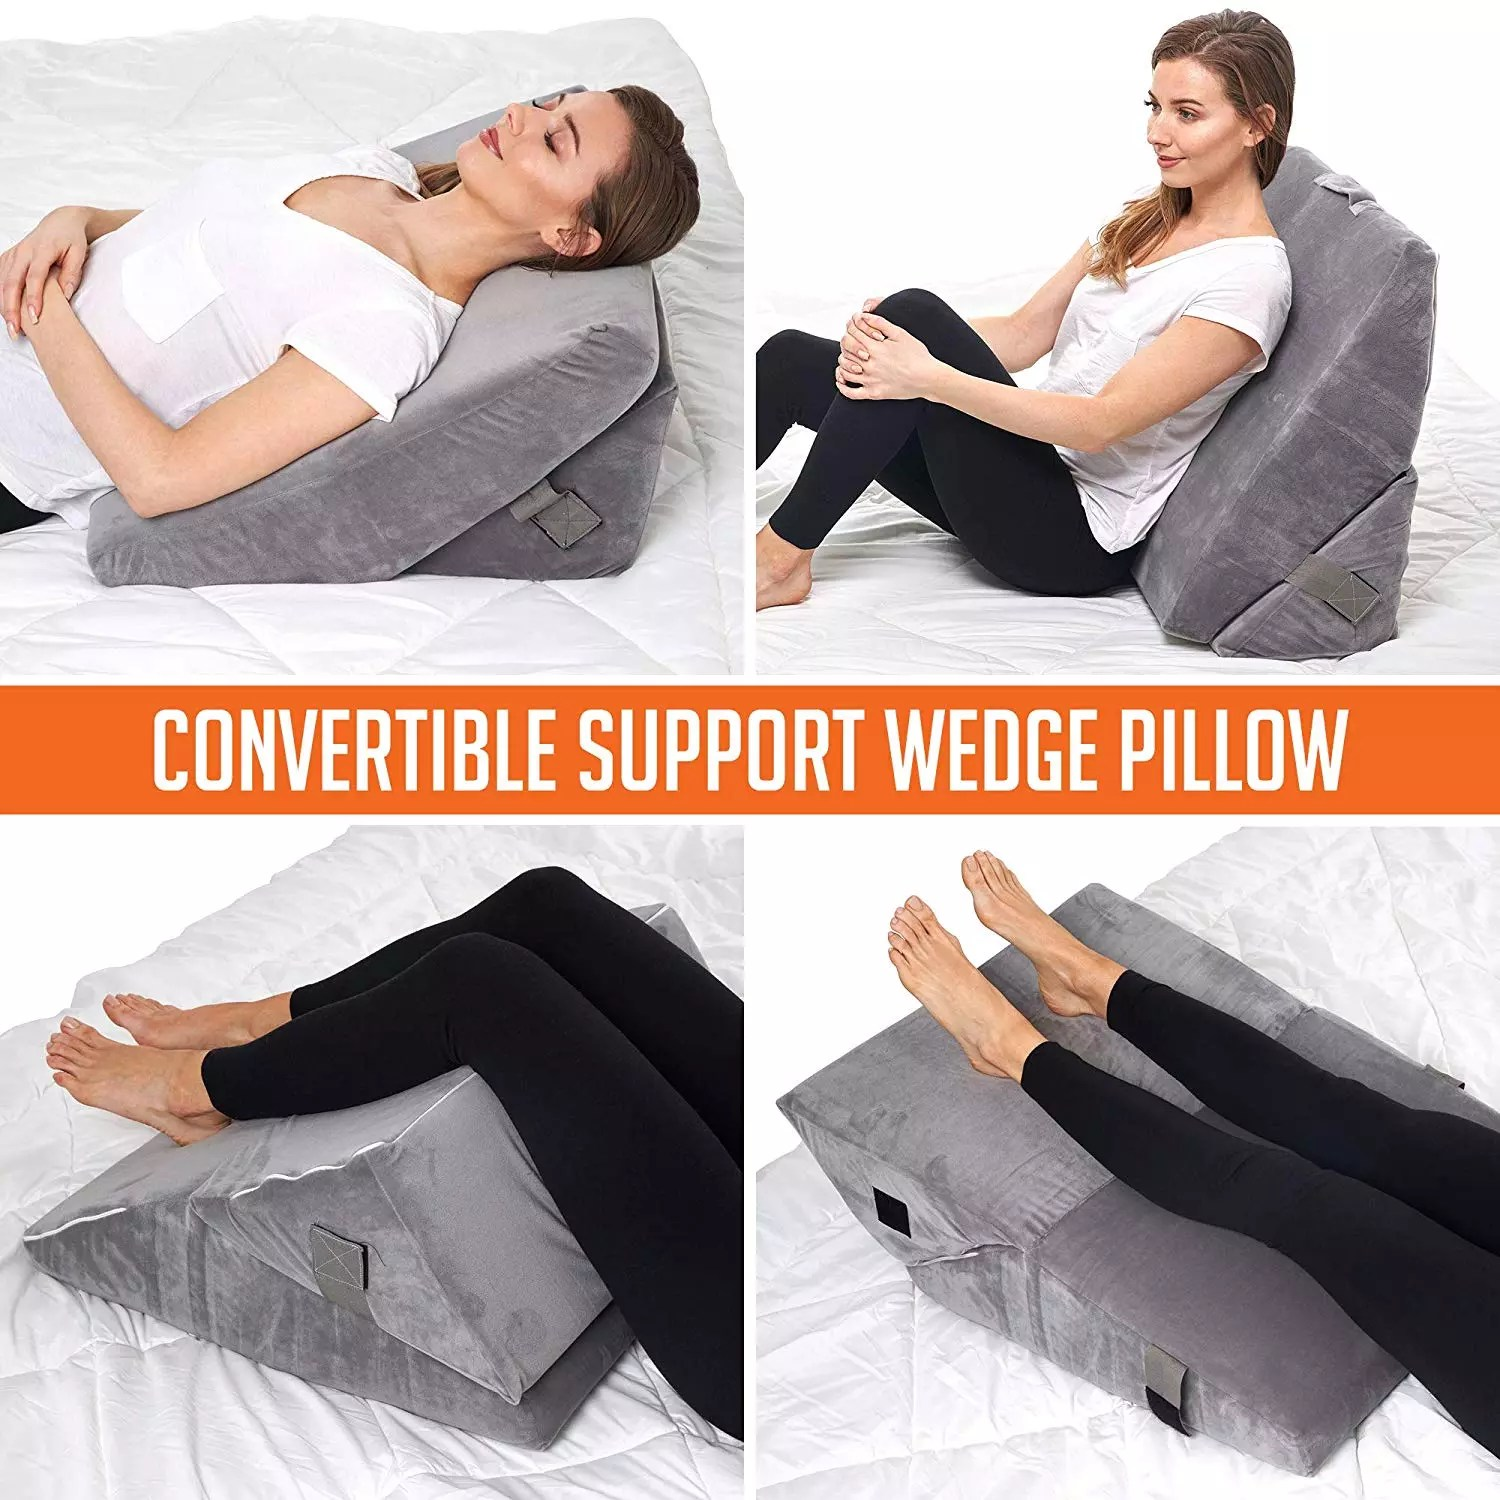 4 in 1 design comfort bed wedge pillow for anti snoring heartburn lower and upper back pain buy triangle bed wedge pillow anti snoring bed wedge pillow back support wedge pillow for sleeping